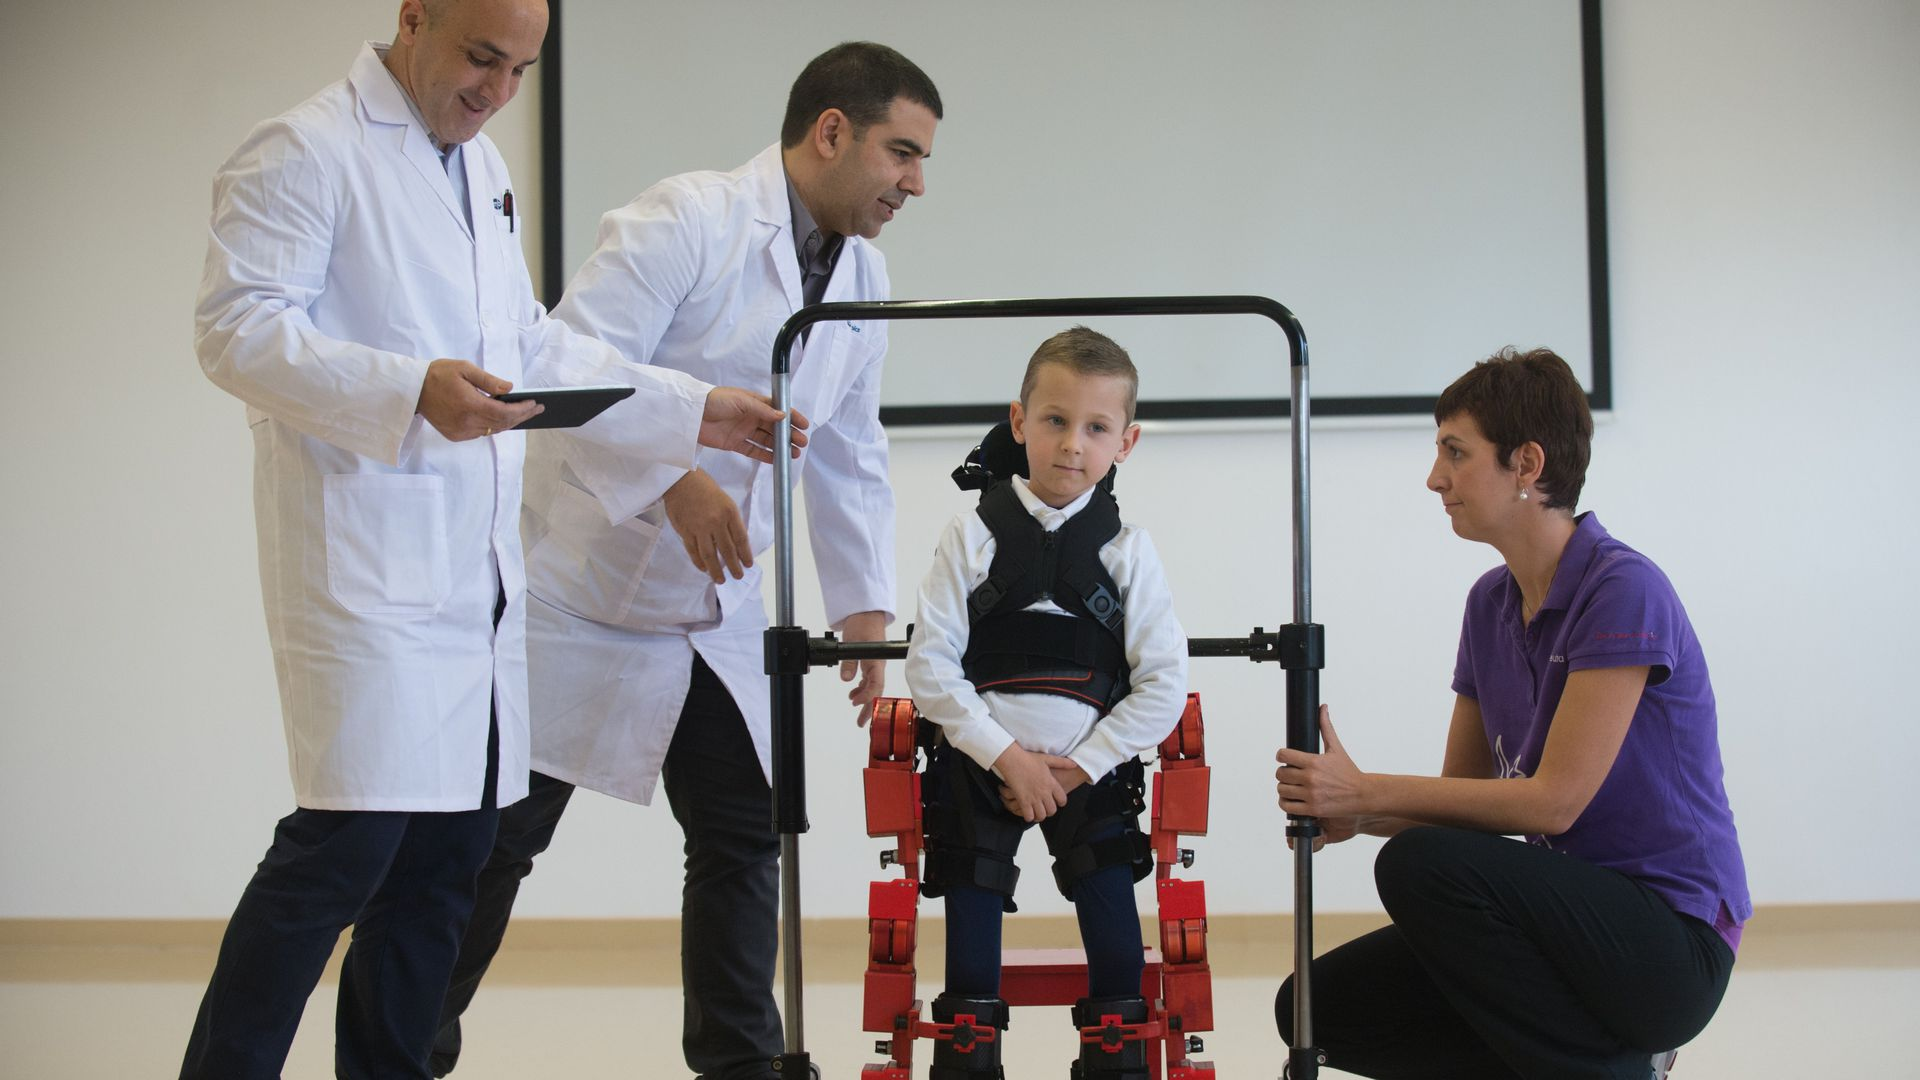 Doctors look at a child who has spinal muscular atrophy.